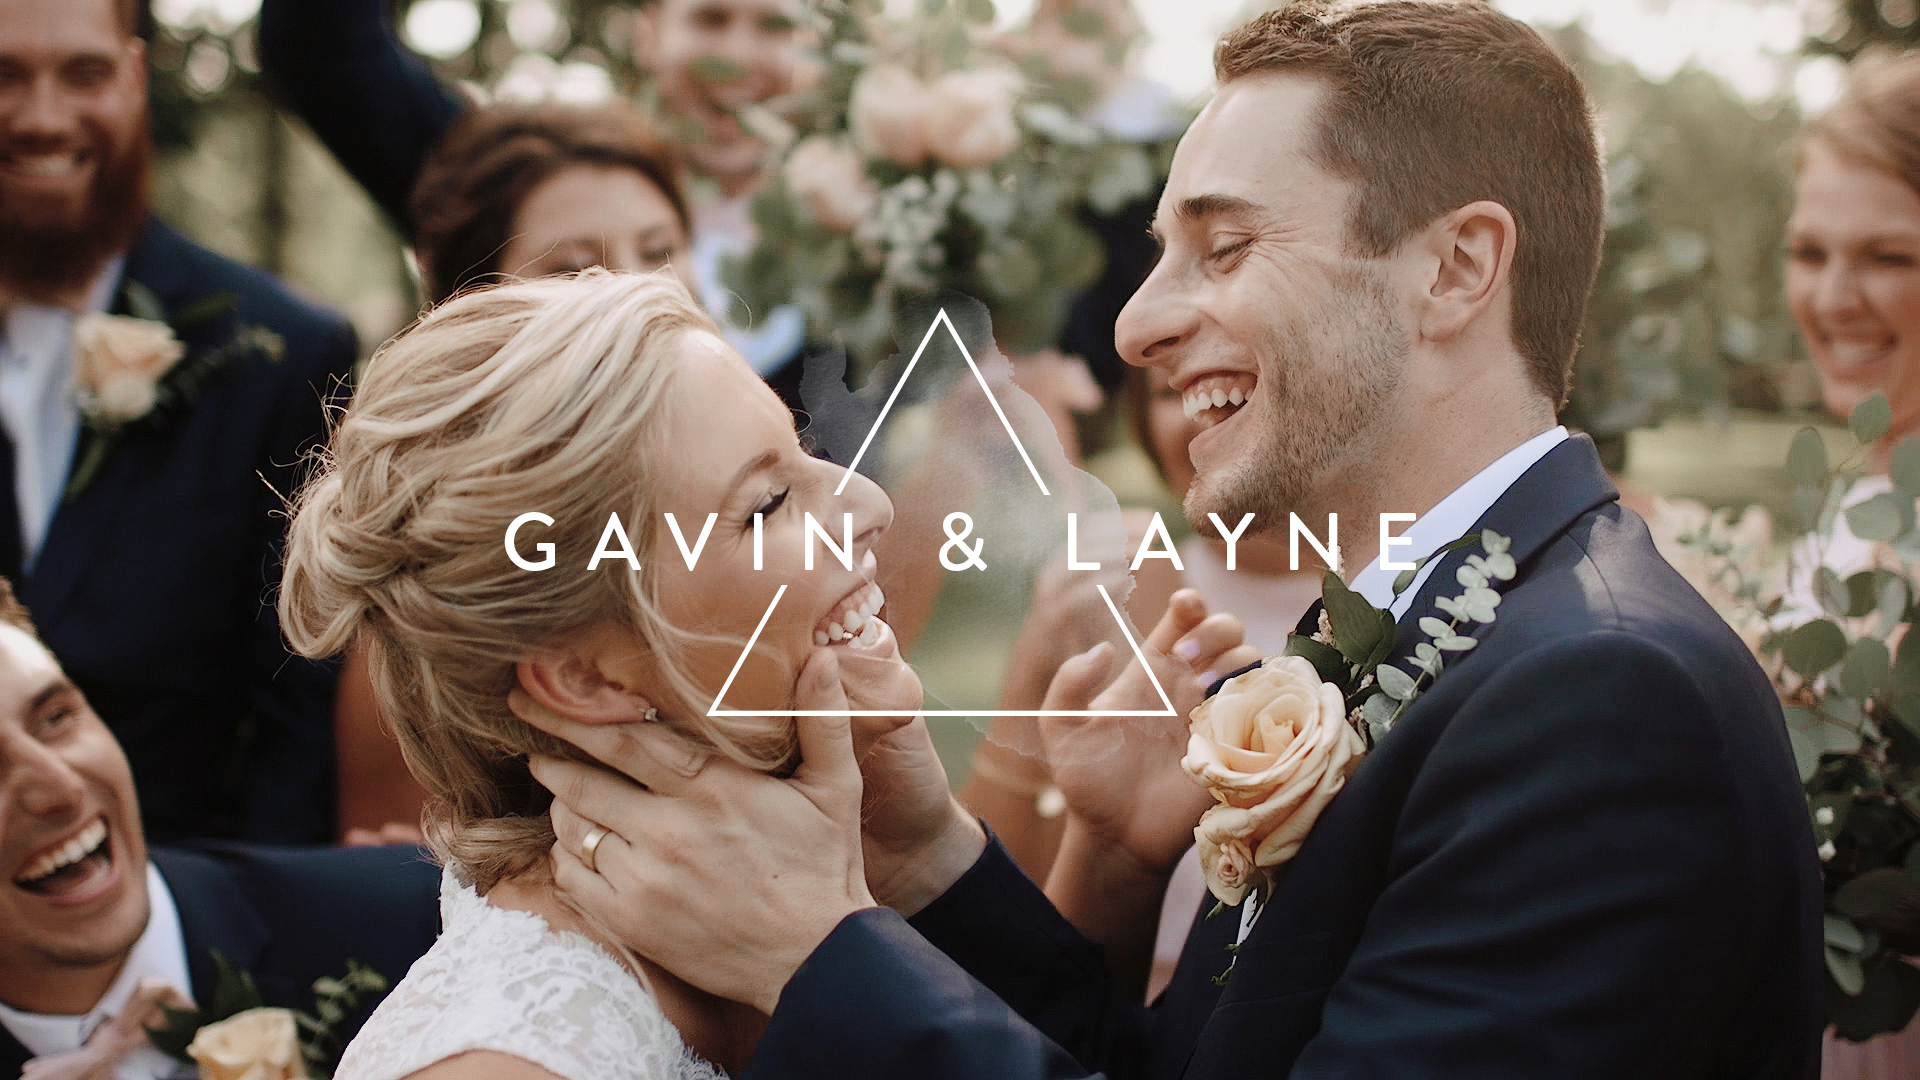 Gavin + Layne | Independence, Kansas | Independence Country Club, Independence